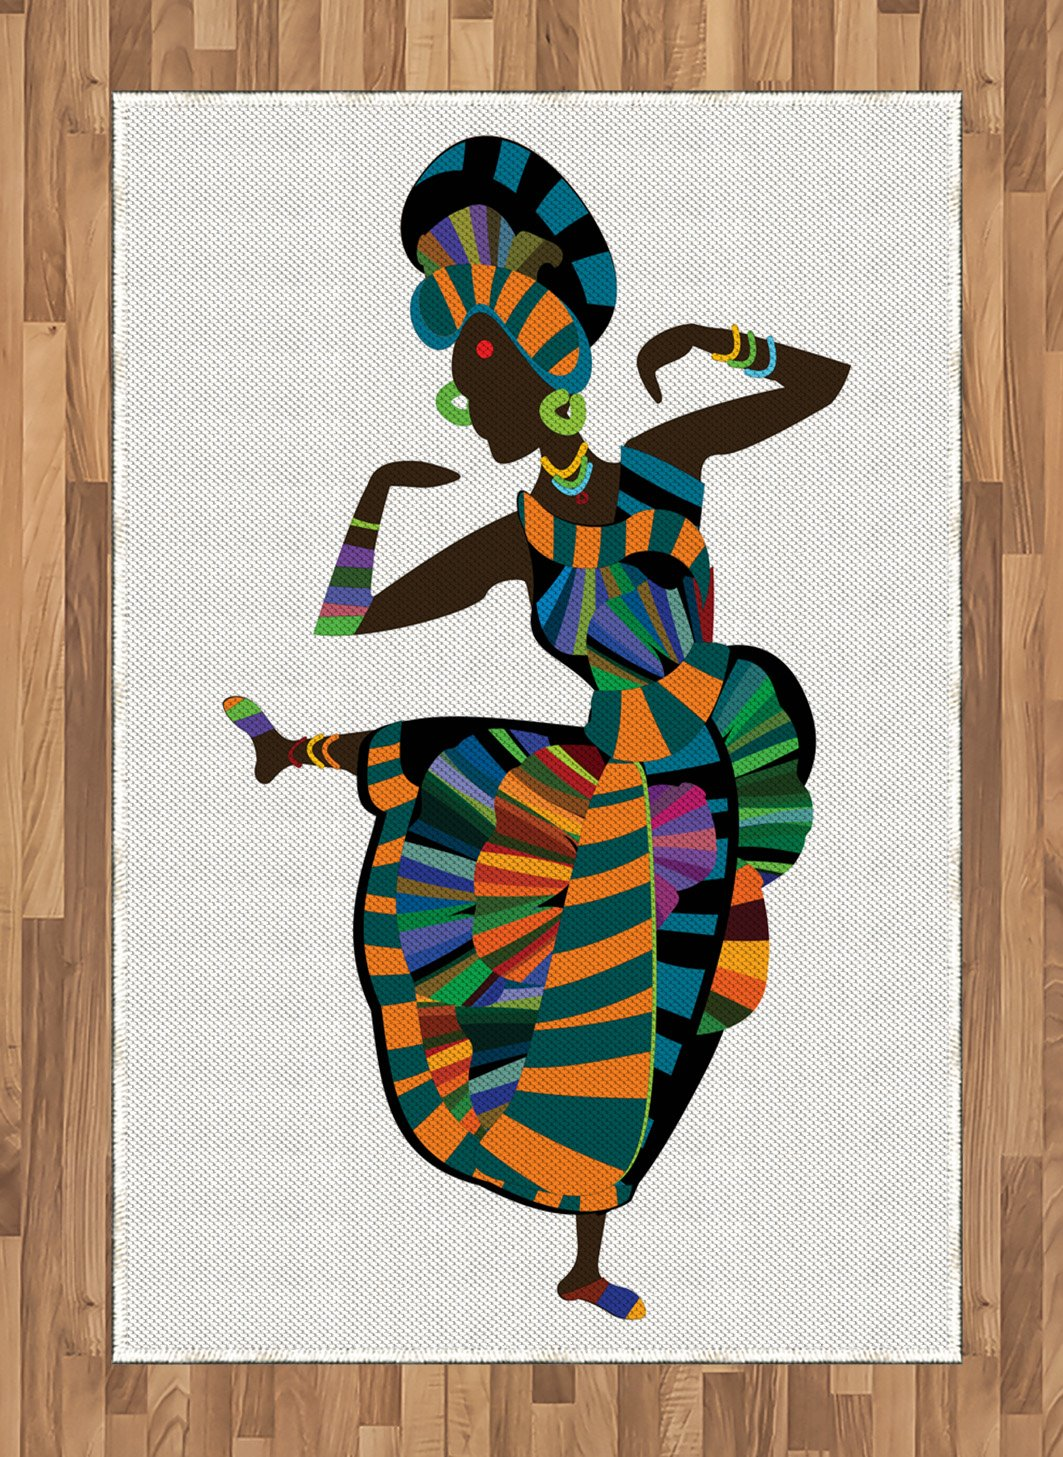 Ambesonne African Woman Area Rug, Black Girl in a Traditional Dress Performing an Ethnic Dance Native Zulu, Flat Woven Accent Rug for Living Room Bedroom Dining Room, 4 X 5.7 FT, Multicolor